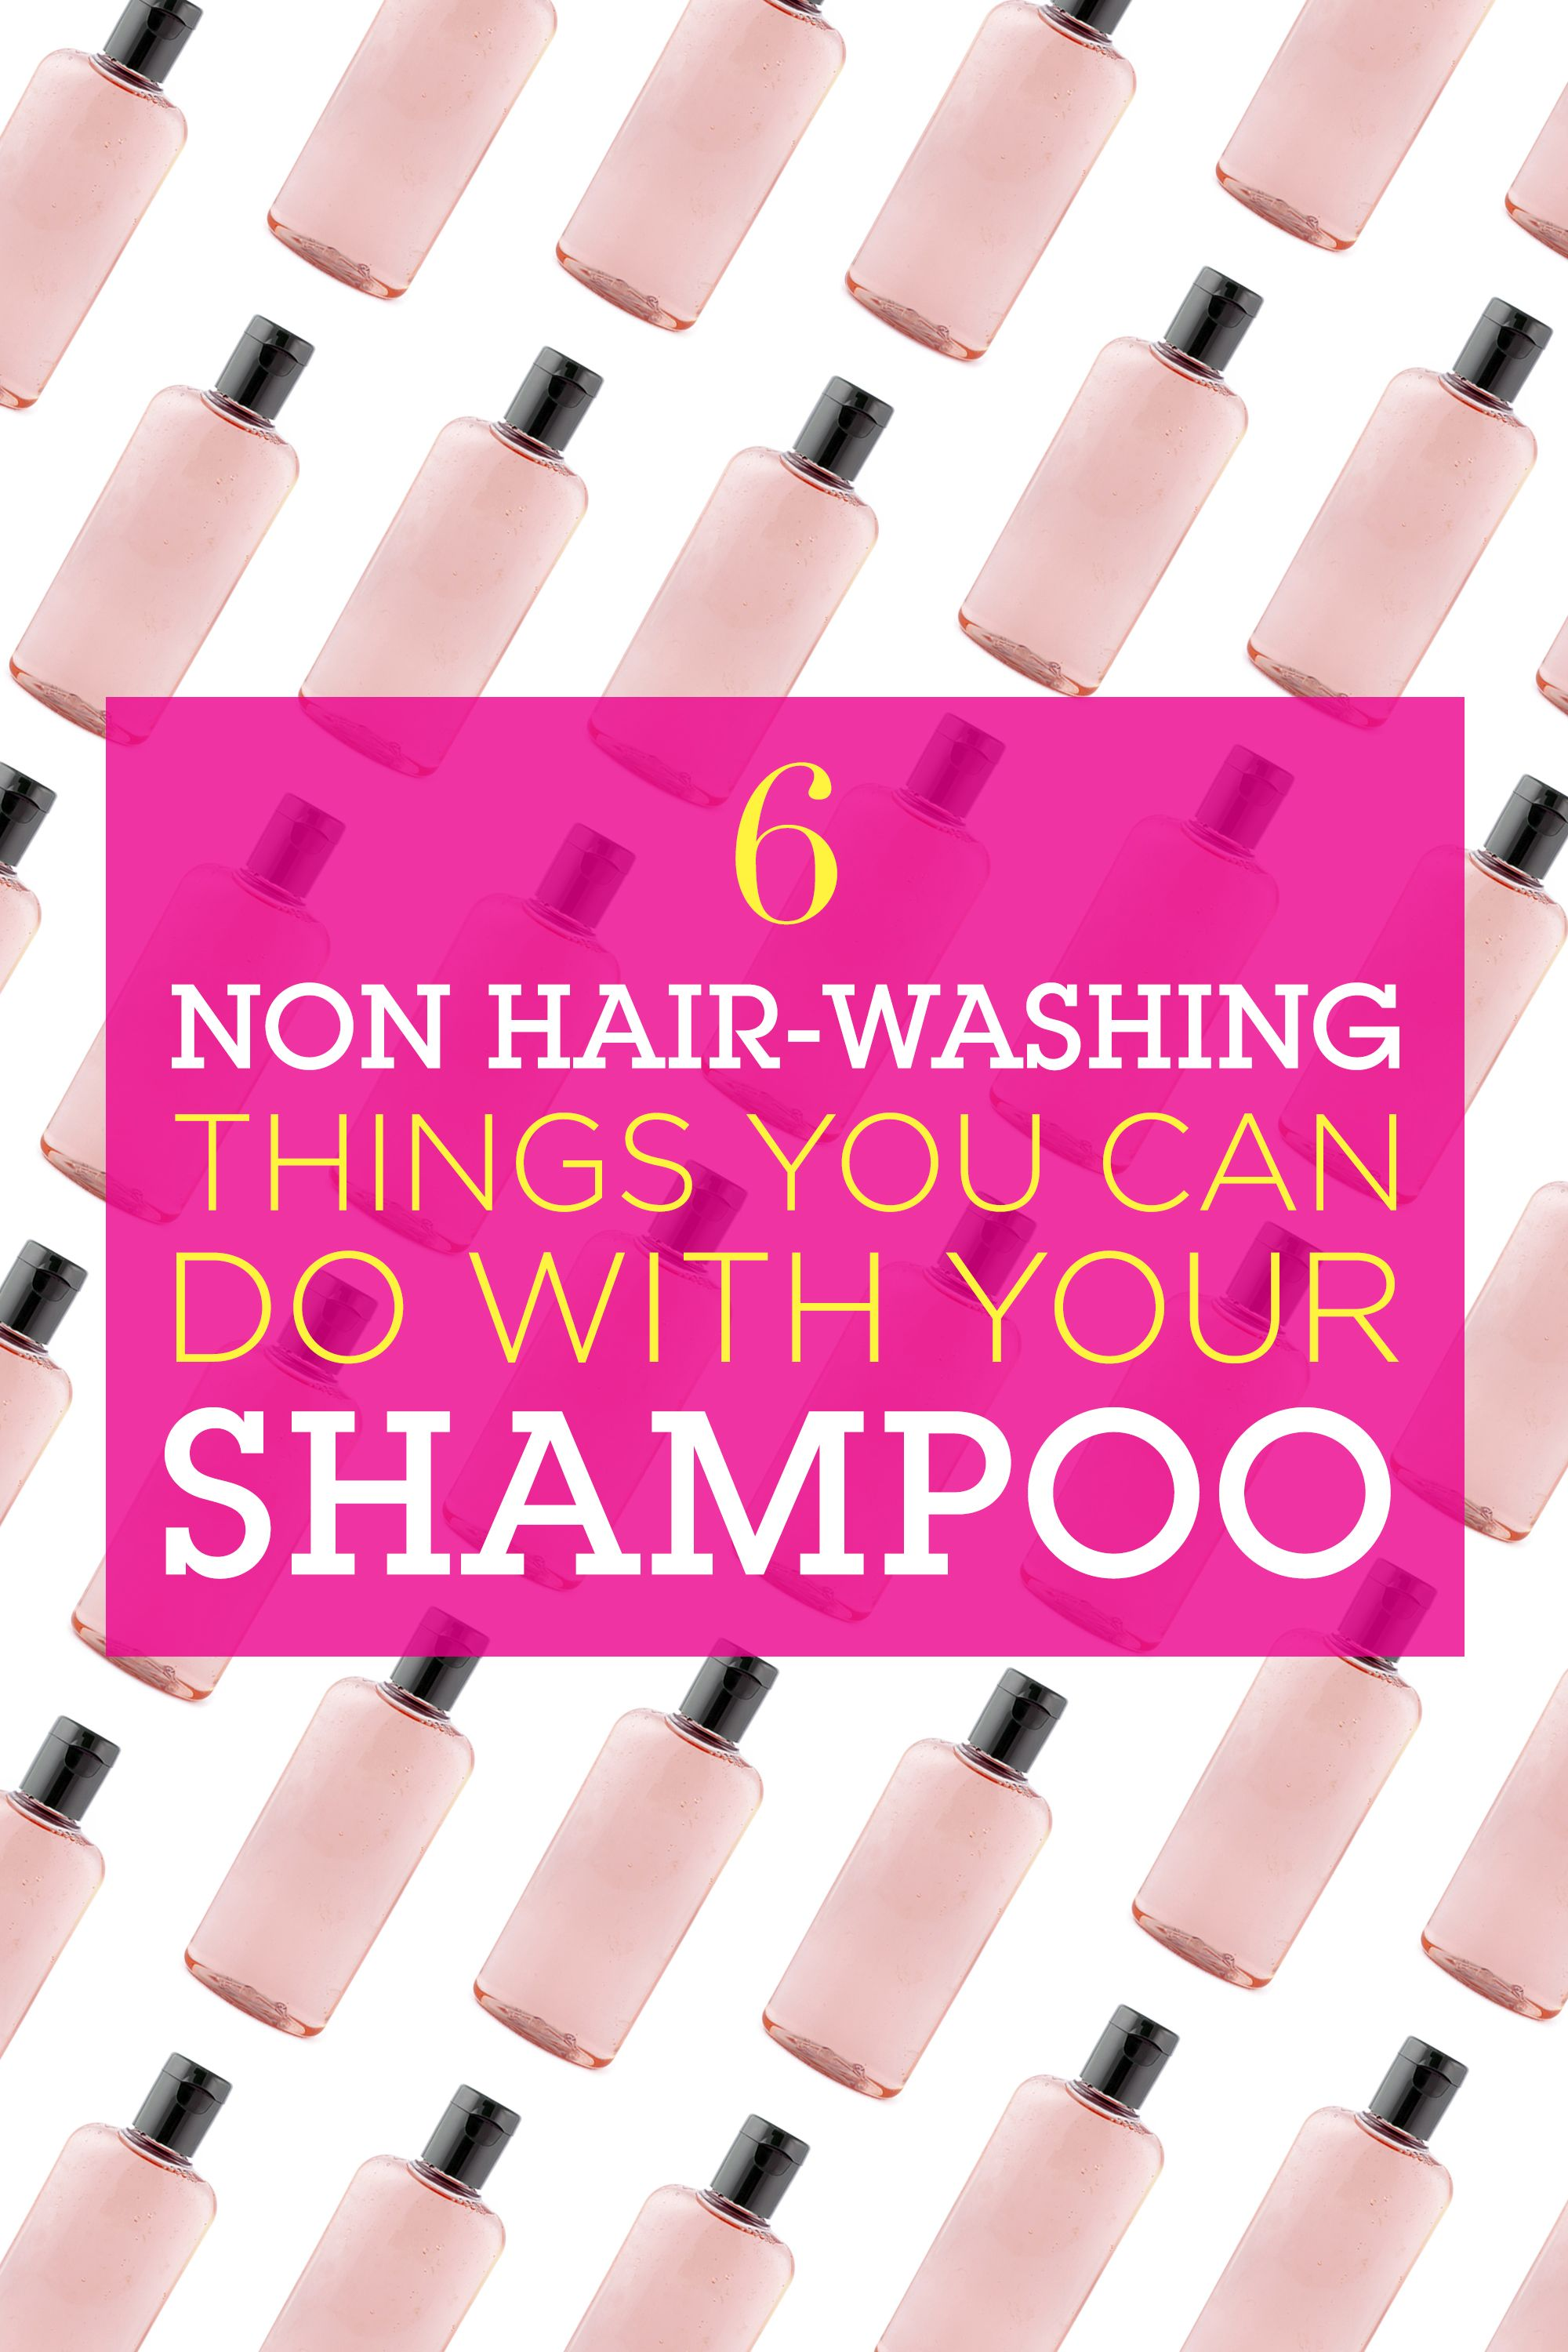 6 Non Hair-Washing Things You Can Do With Your Shampoo